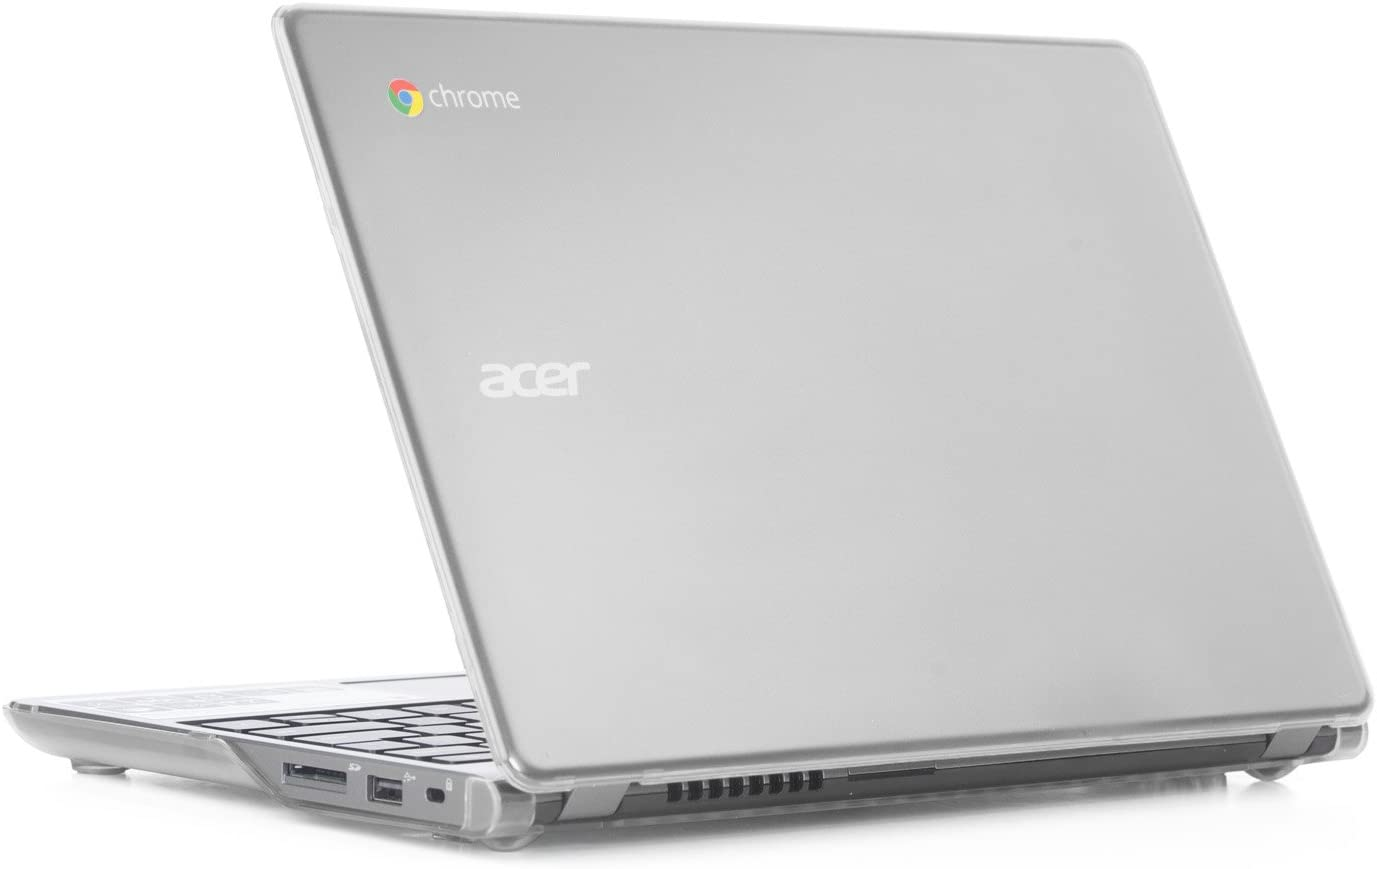 "Clear iPearl mCover Hard Shell Case for 11.6"" Acer C720 C720P C740 Series ChromeBook Laptop (NOT Compatible with Newer 11.6"" Acer Chromebook 11 C730 / CB3-111 / CB3-131 Series Laptop)"